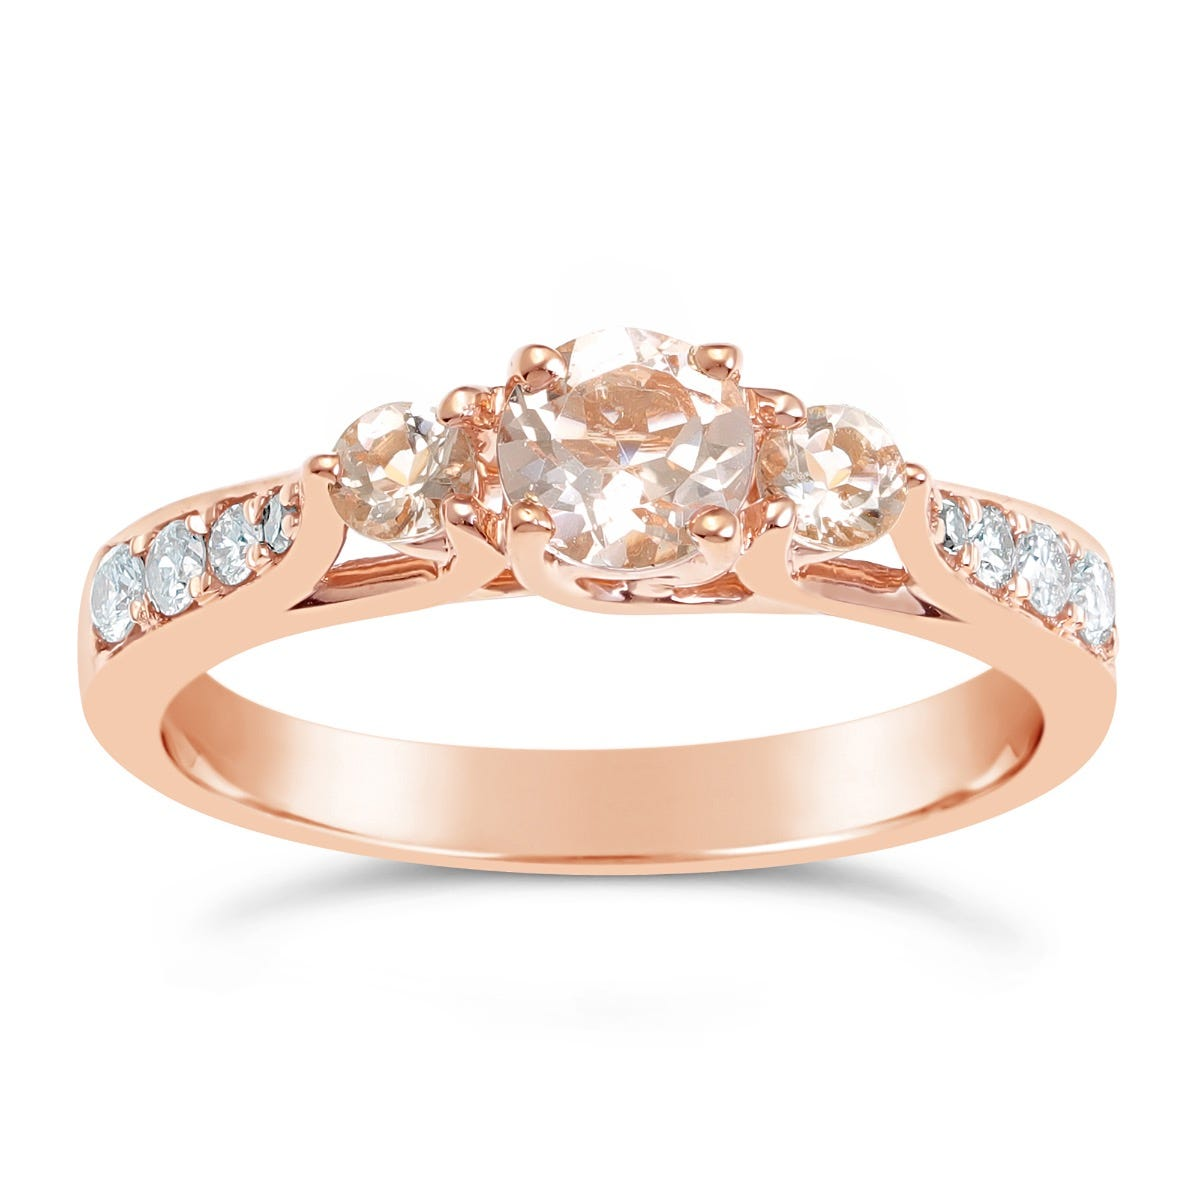 Morganite Three Stone Ring in 10k Rose Gold